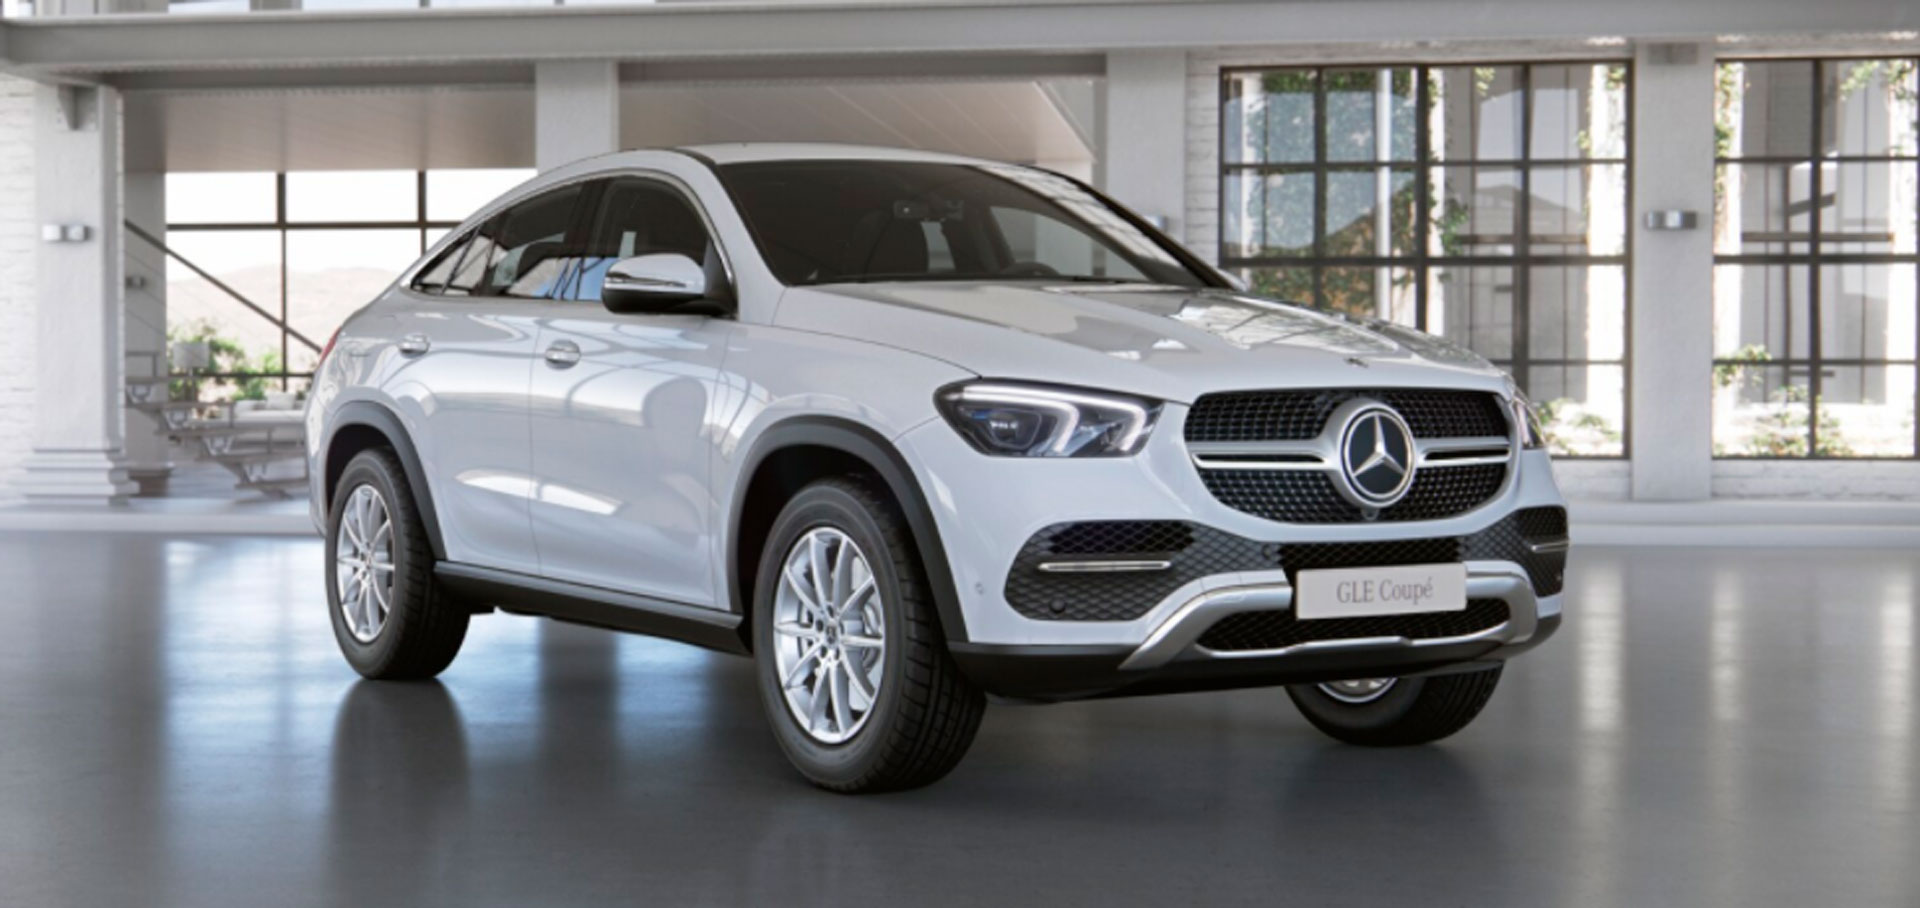 Mercedes-Benz GLE Coupe 0152632027